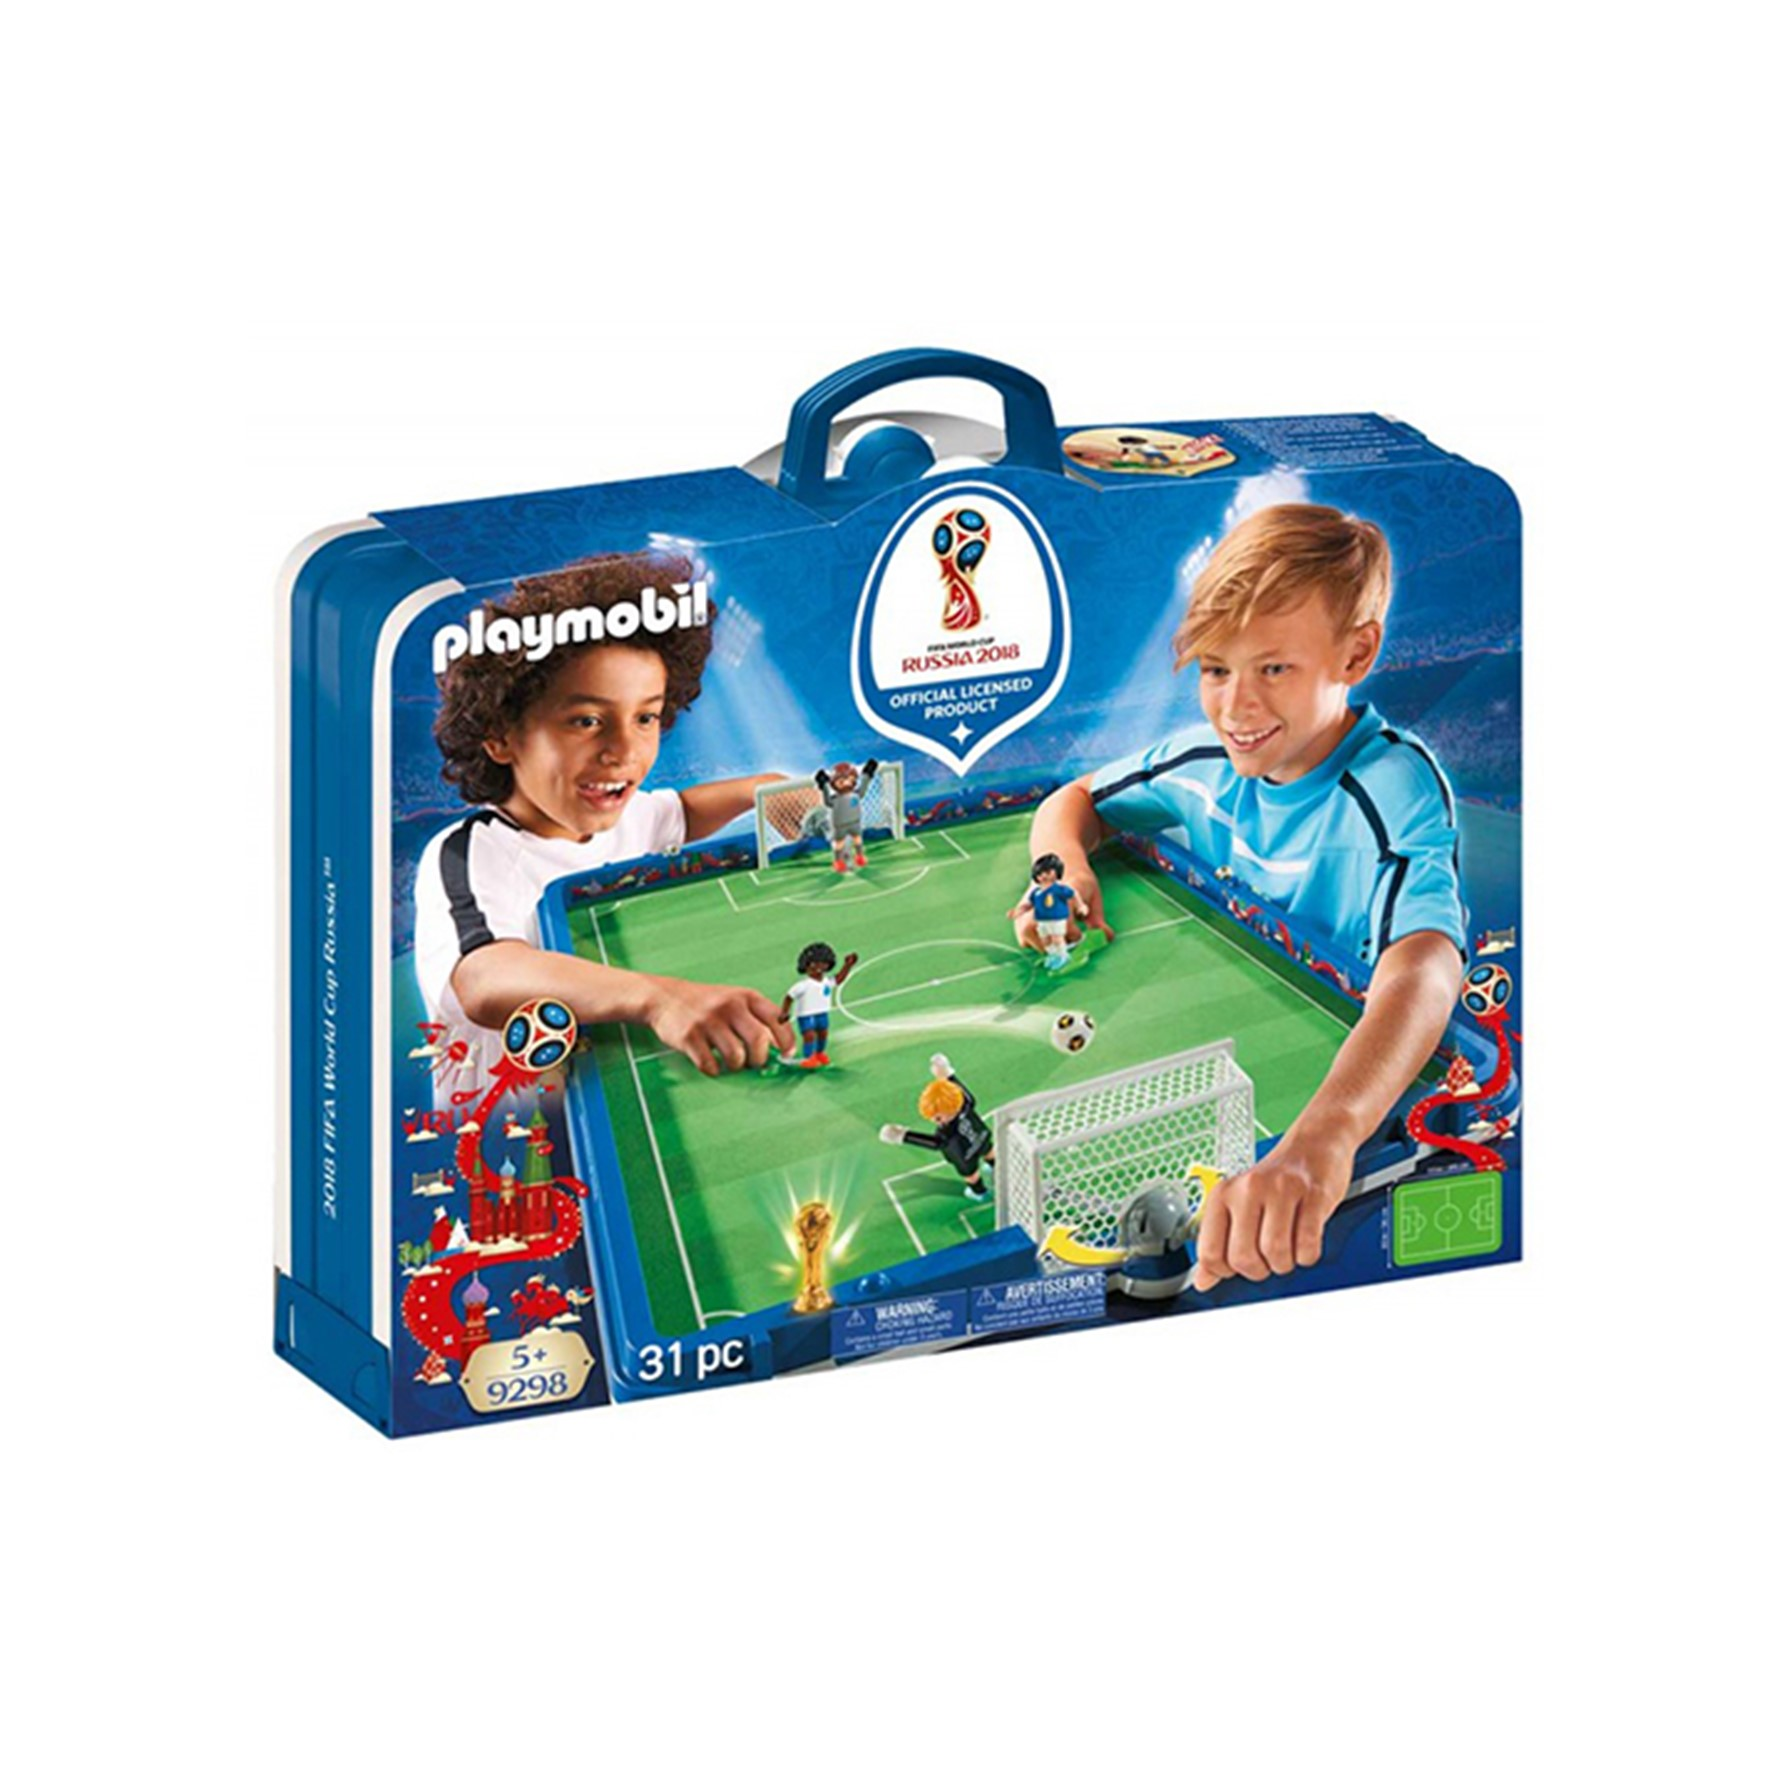 Playmobil 2018 Fifa World Cup Russia